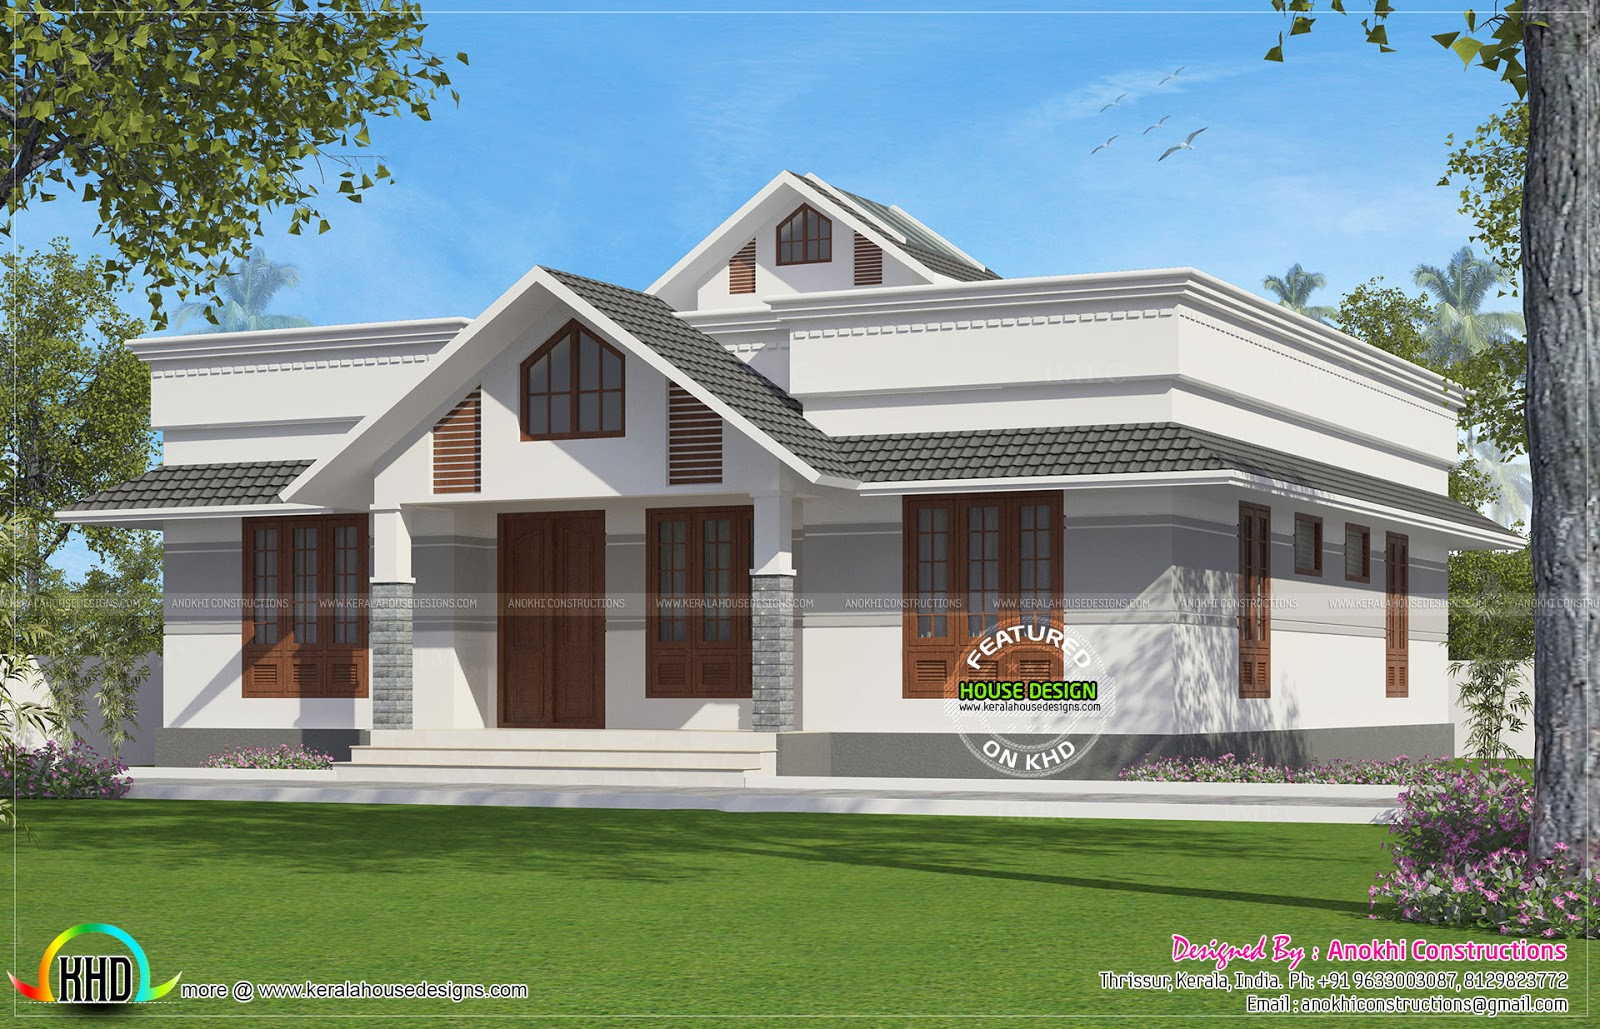 1330 square feet small house plan kerala home design and for Low cost per square foot house plans